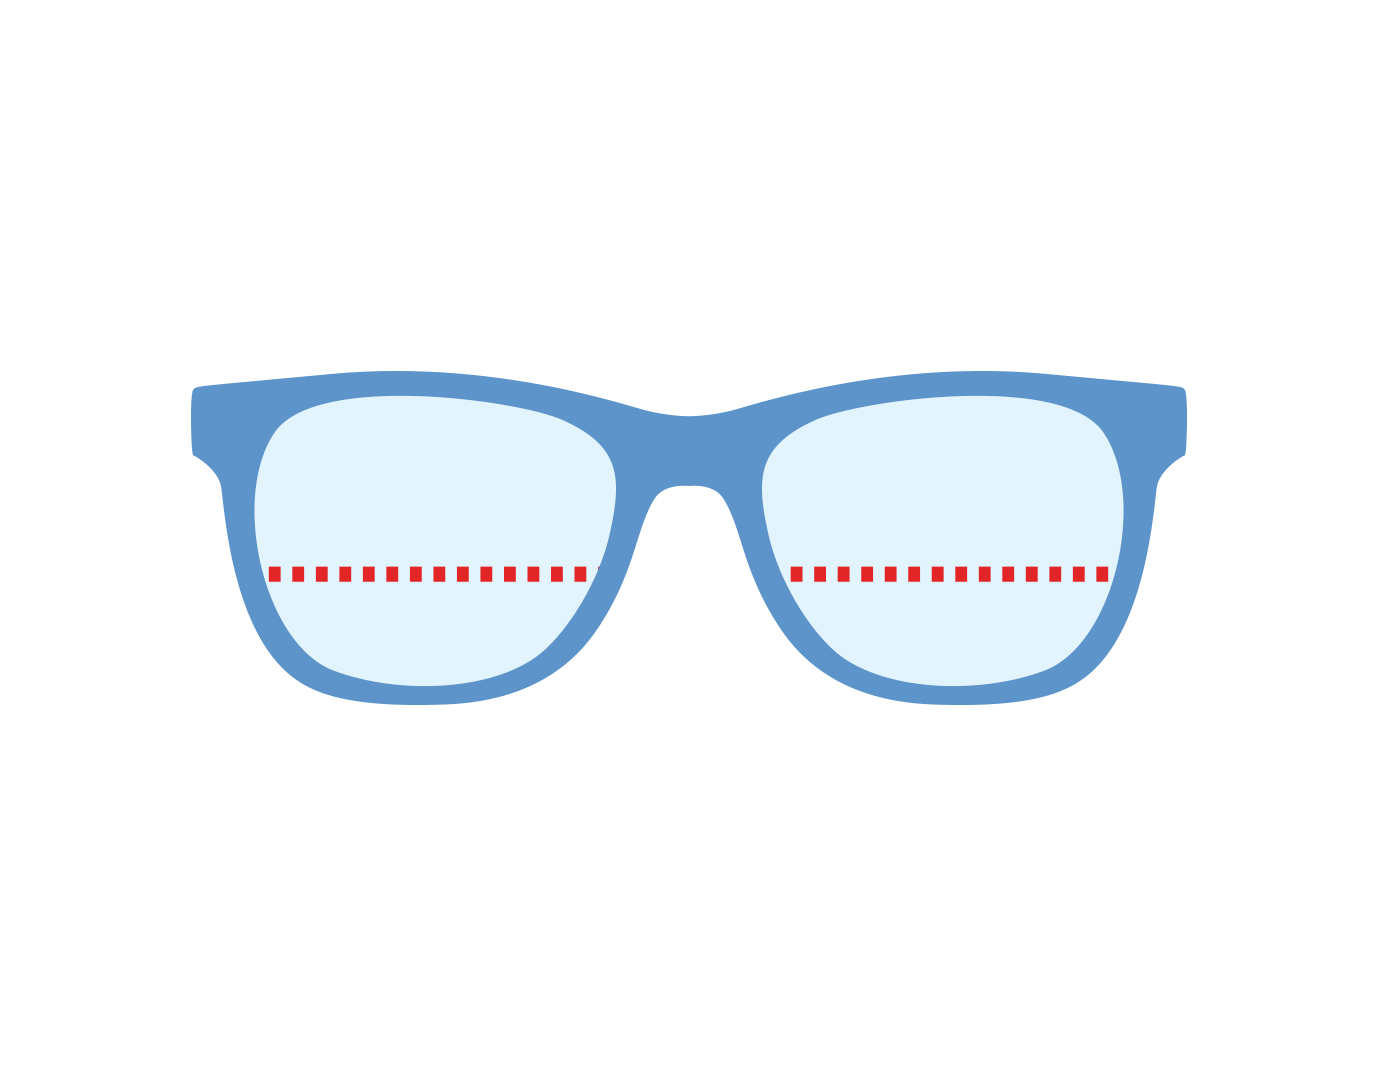 Icon of glasses with bifocal lenses